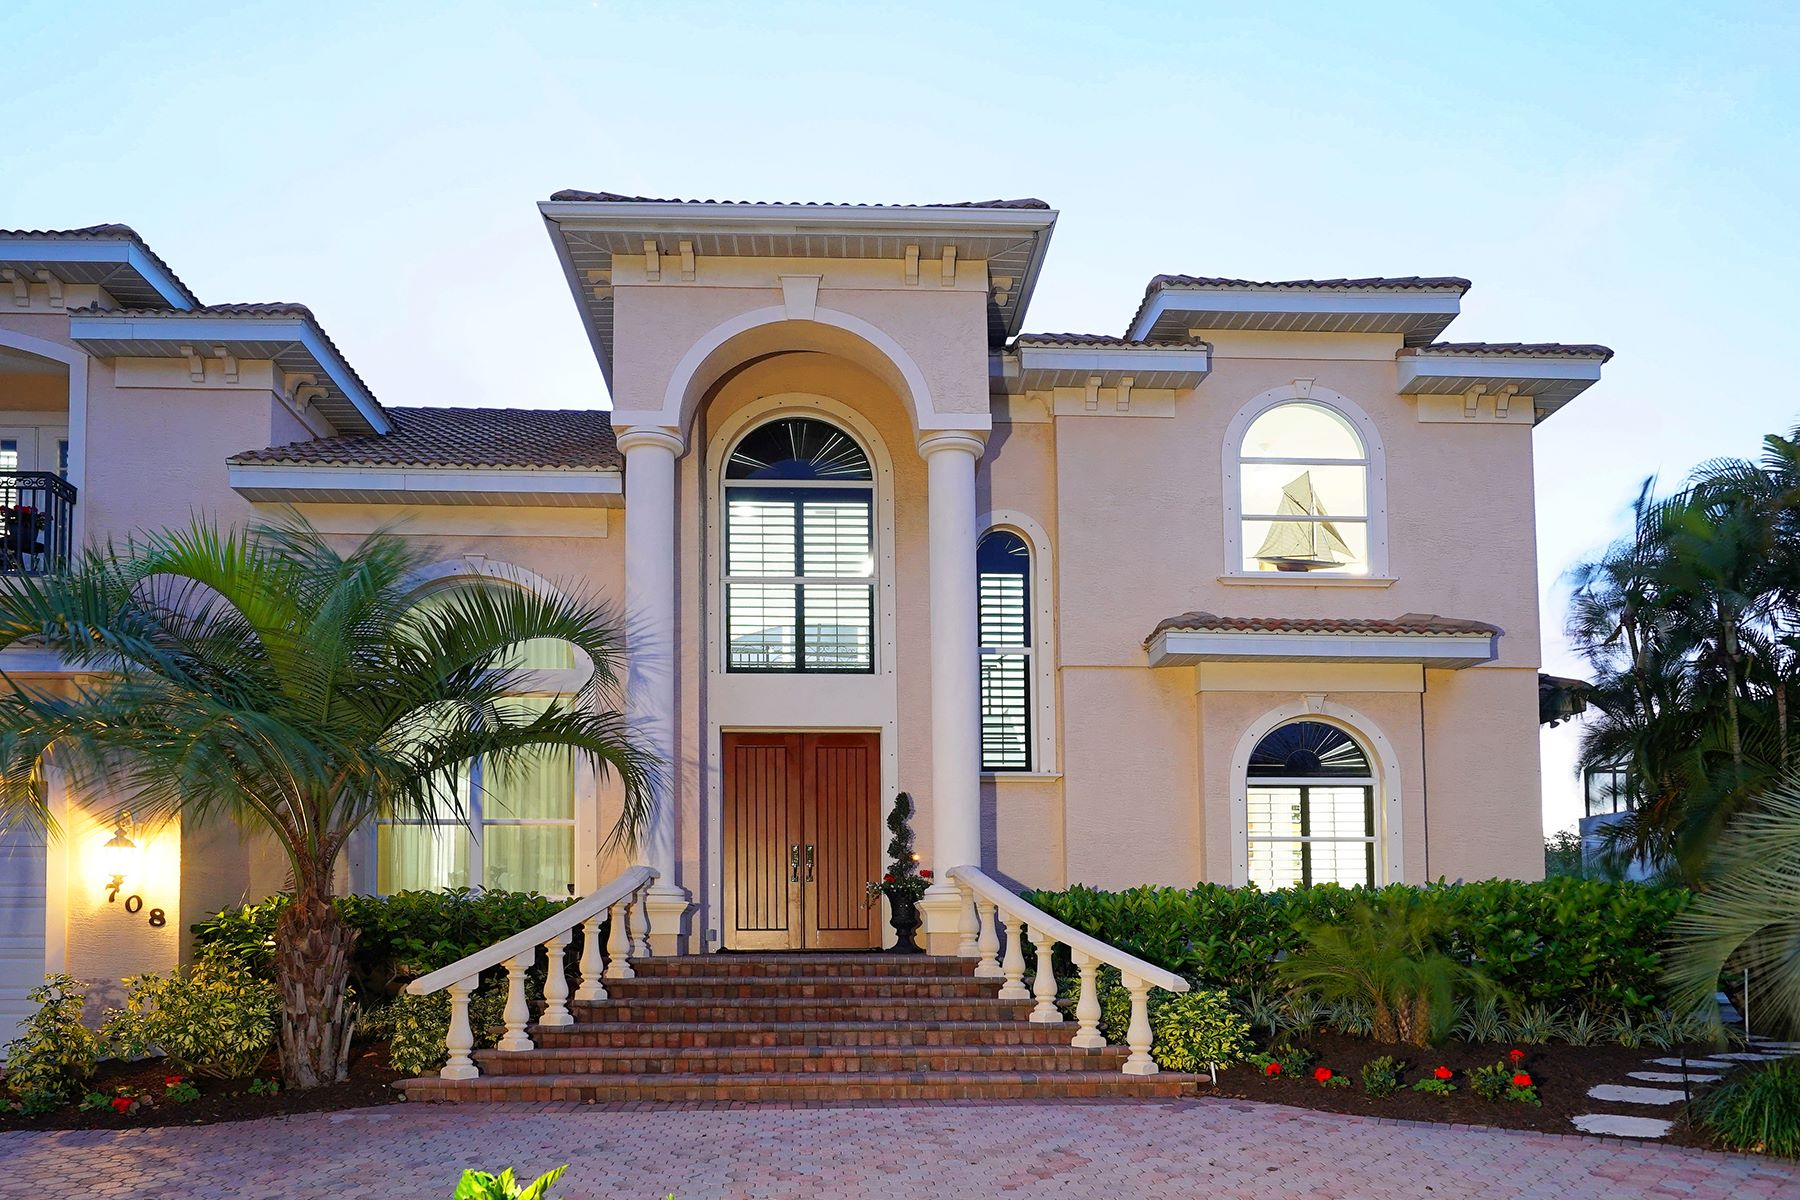 Single Family Home for Sale at HIDEAWAY BAY 708 Hideaway Bay Ln Longboat Key, Florida, 34228 United States